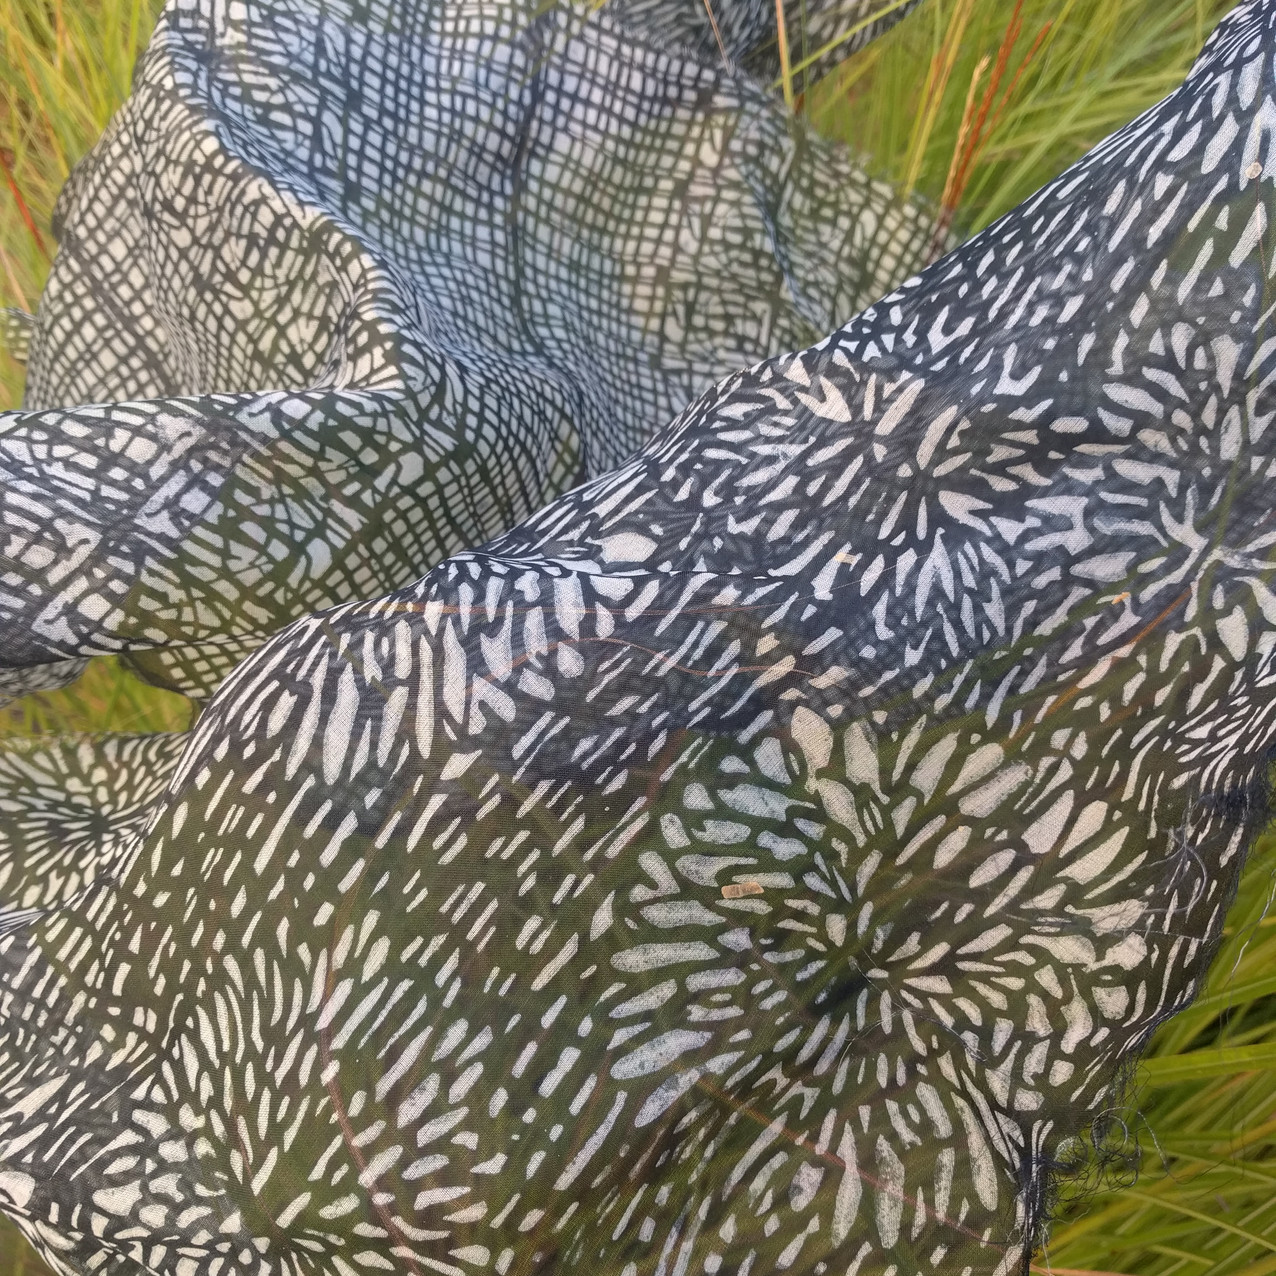 SD work Silk and reeds 4